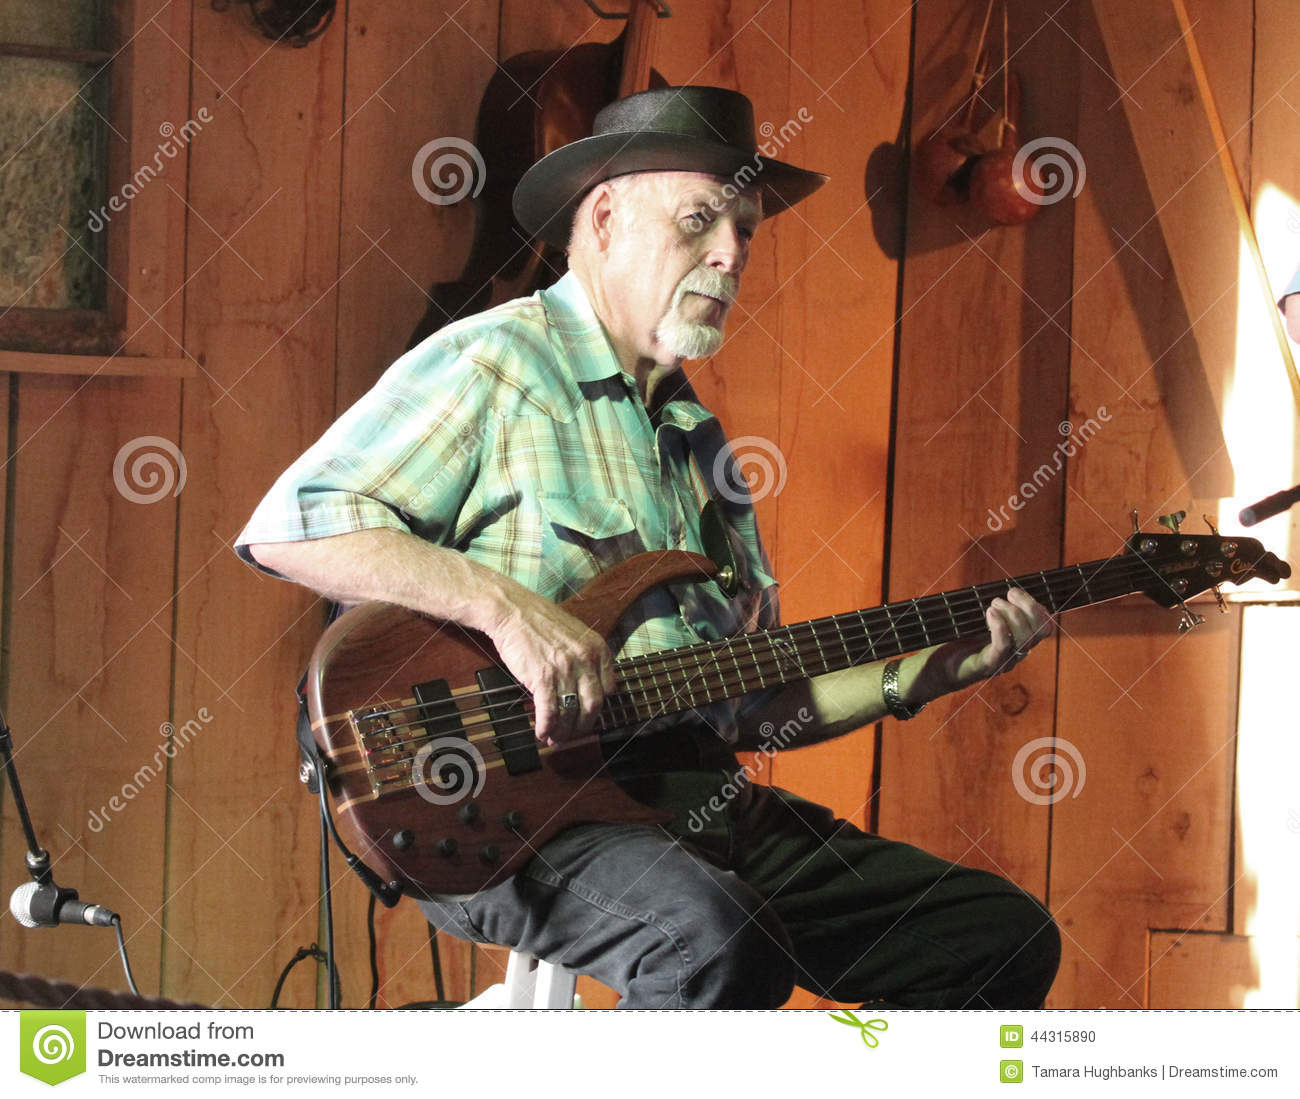 Man plays electric guitar in a barn during a festival